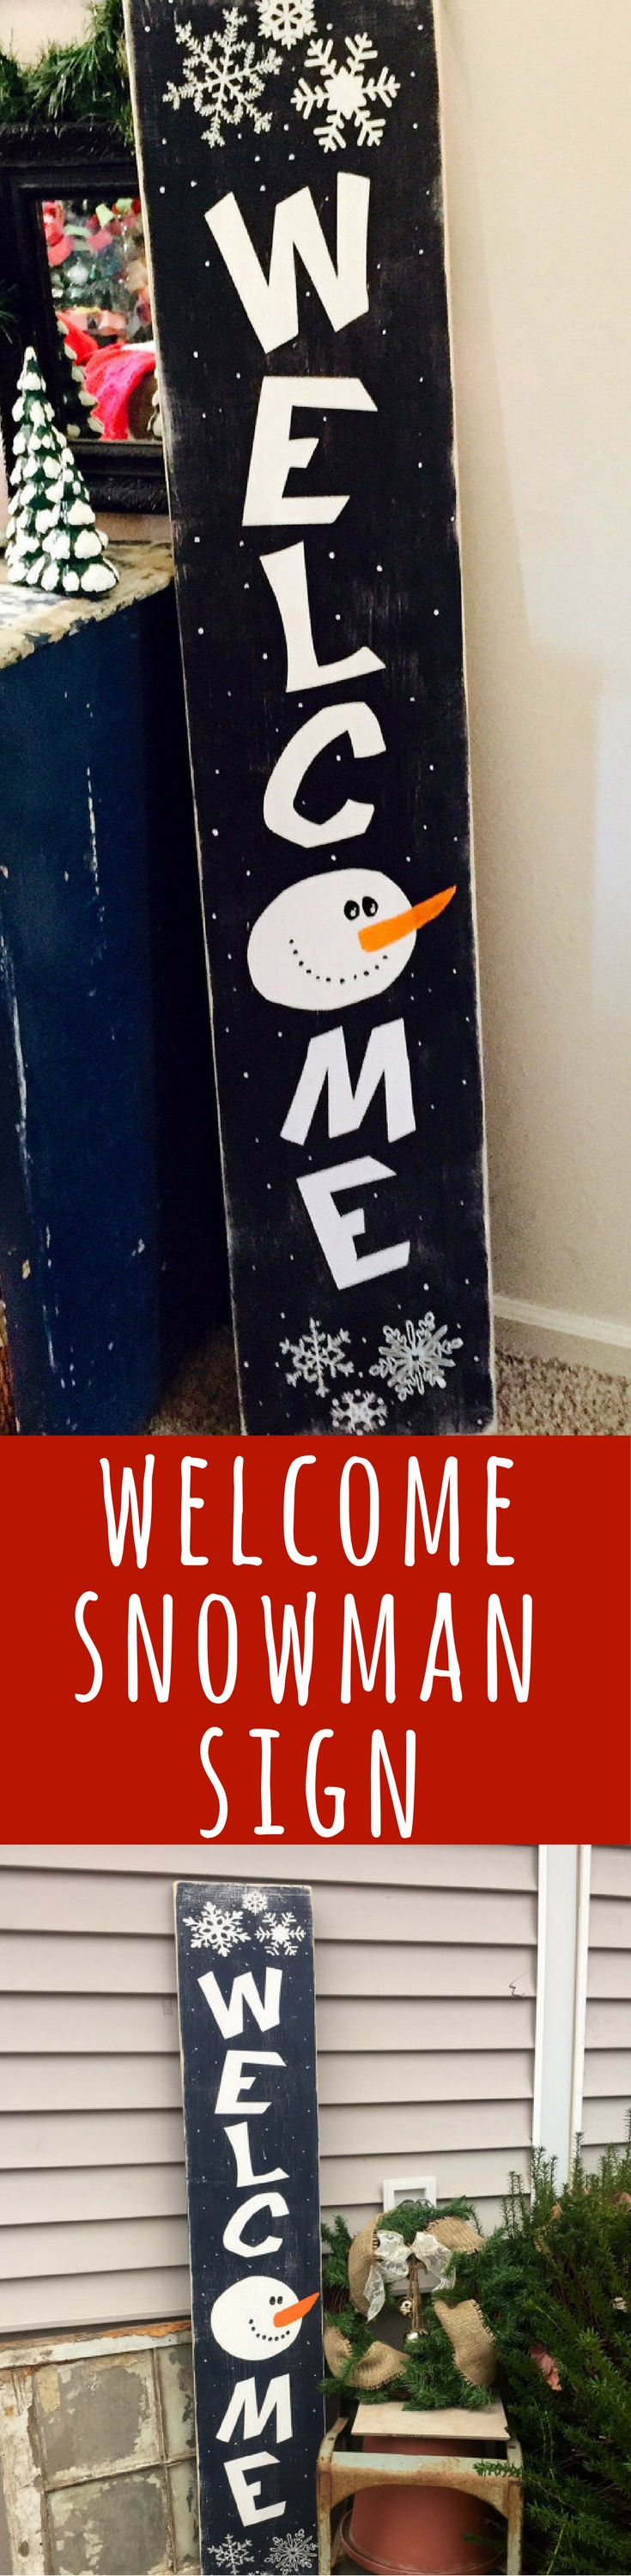 Porch signs welcome my porch barn wood quot what happens on the porch - Welcome Snowman Primitive Snowman Wooden Sign Front Porch Decor Christmas Decor Tall